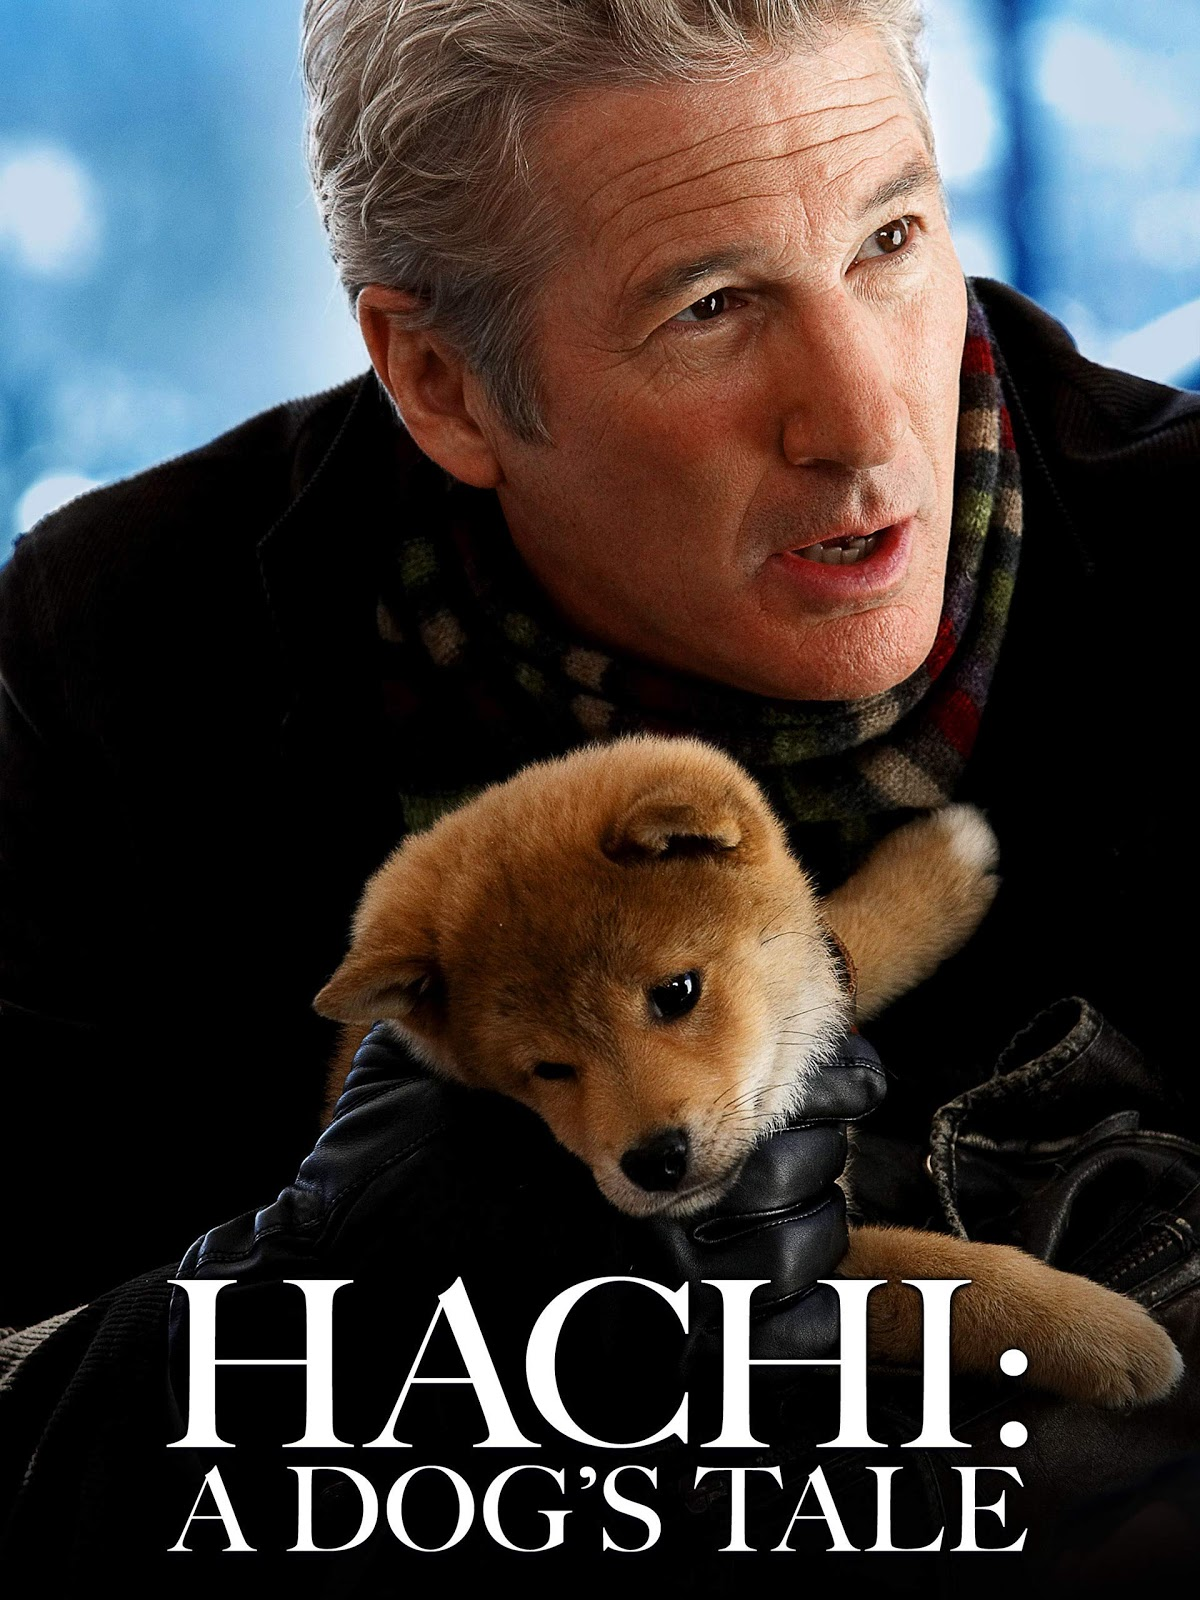 Hachiko- A Dog's Tale